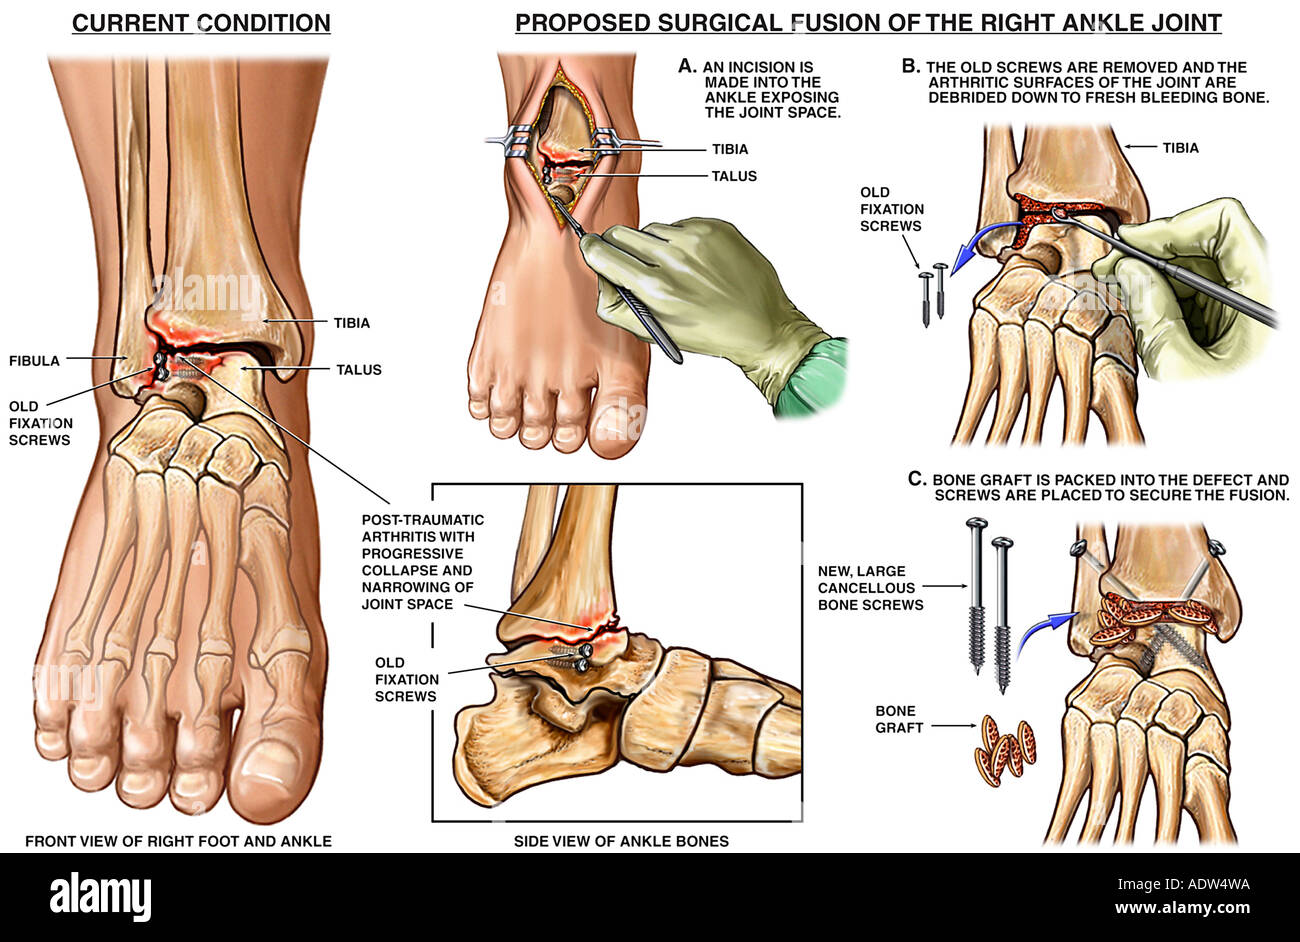 Fractured Ankle Bones Stock Photos & Fractured Ankle Bones Stock ...